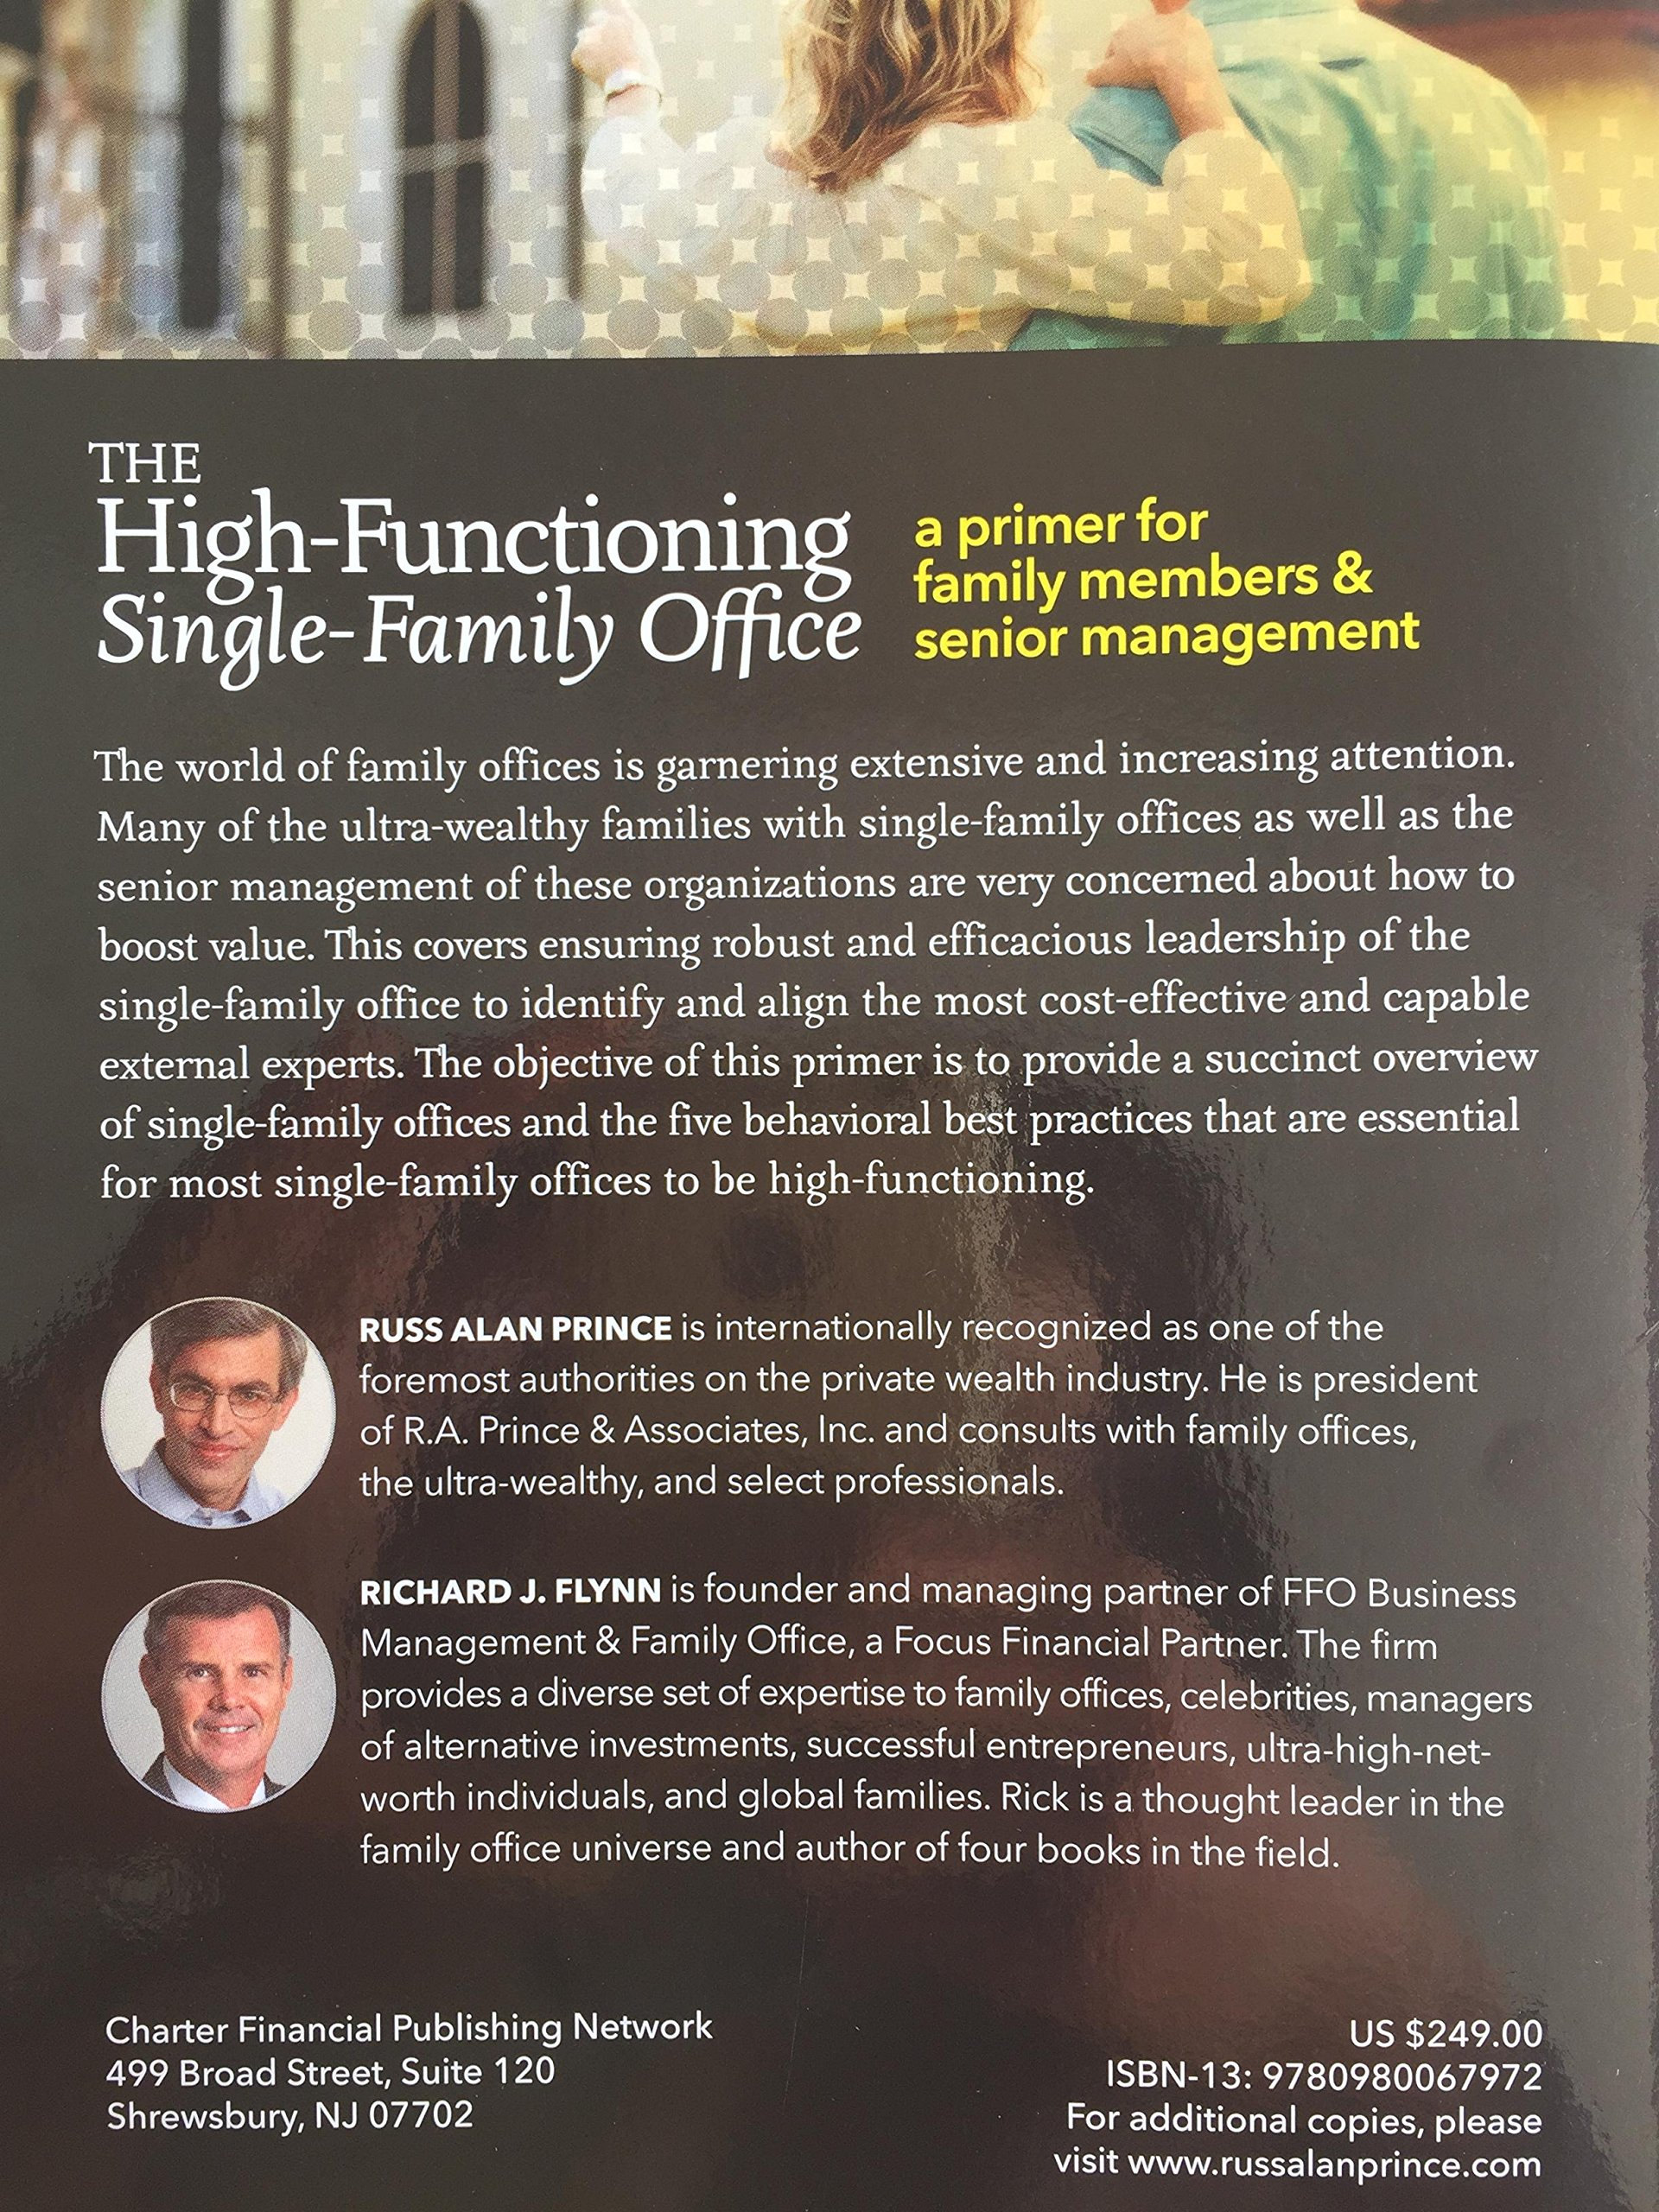 The High-Functioning Single-Family Office: Russ Alan Prince